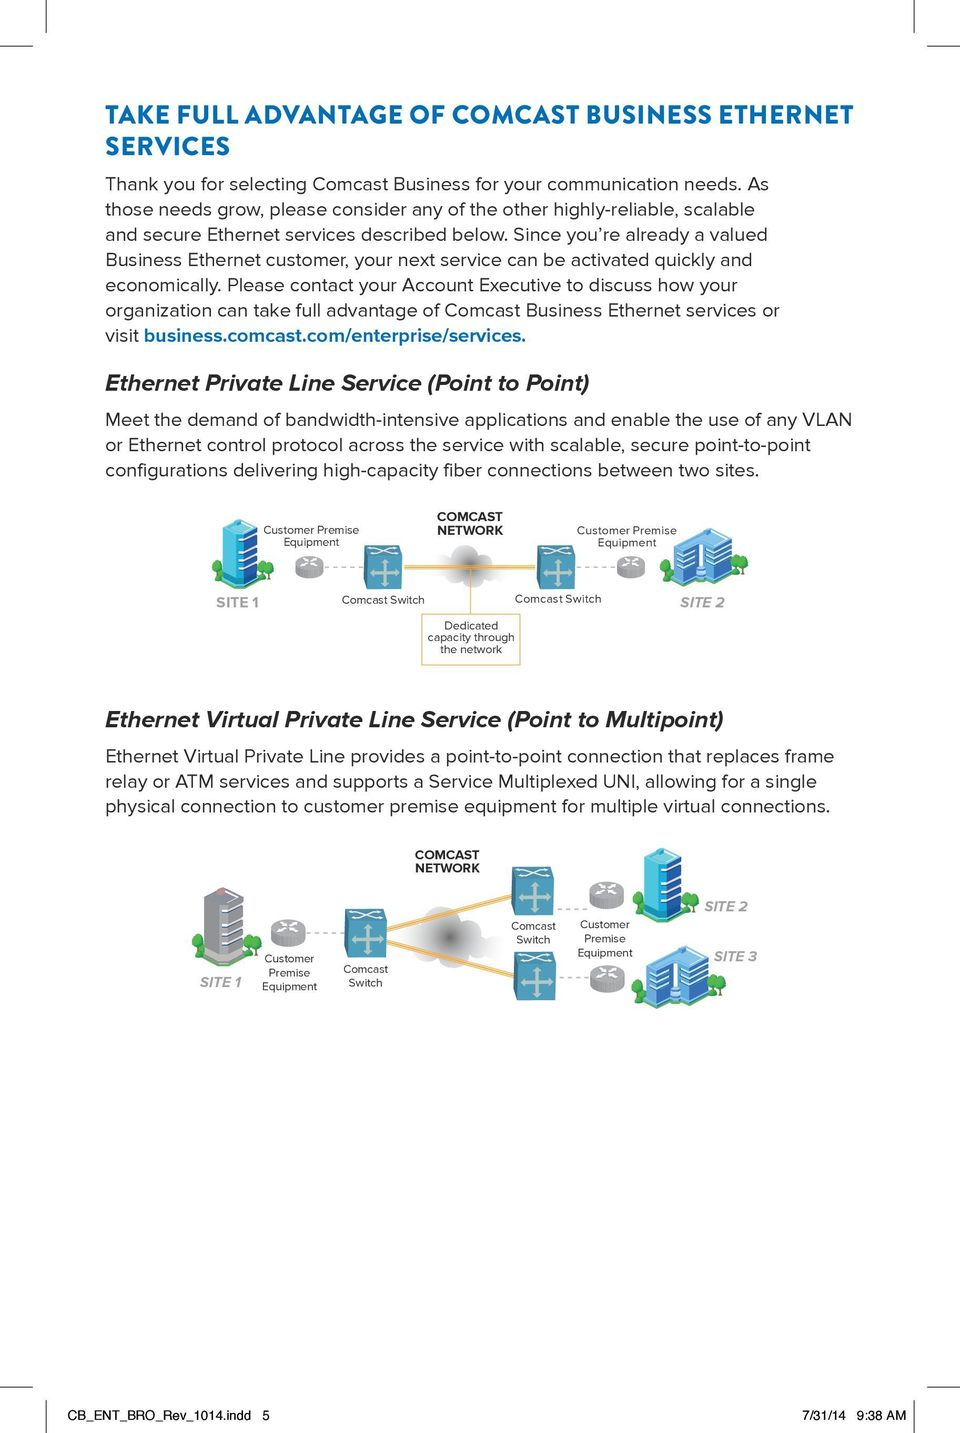 Since you re already a valued Business Ethernet customer, your next service can be activated quickly and economically.